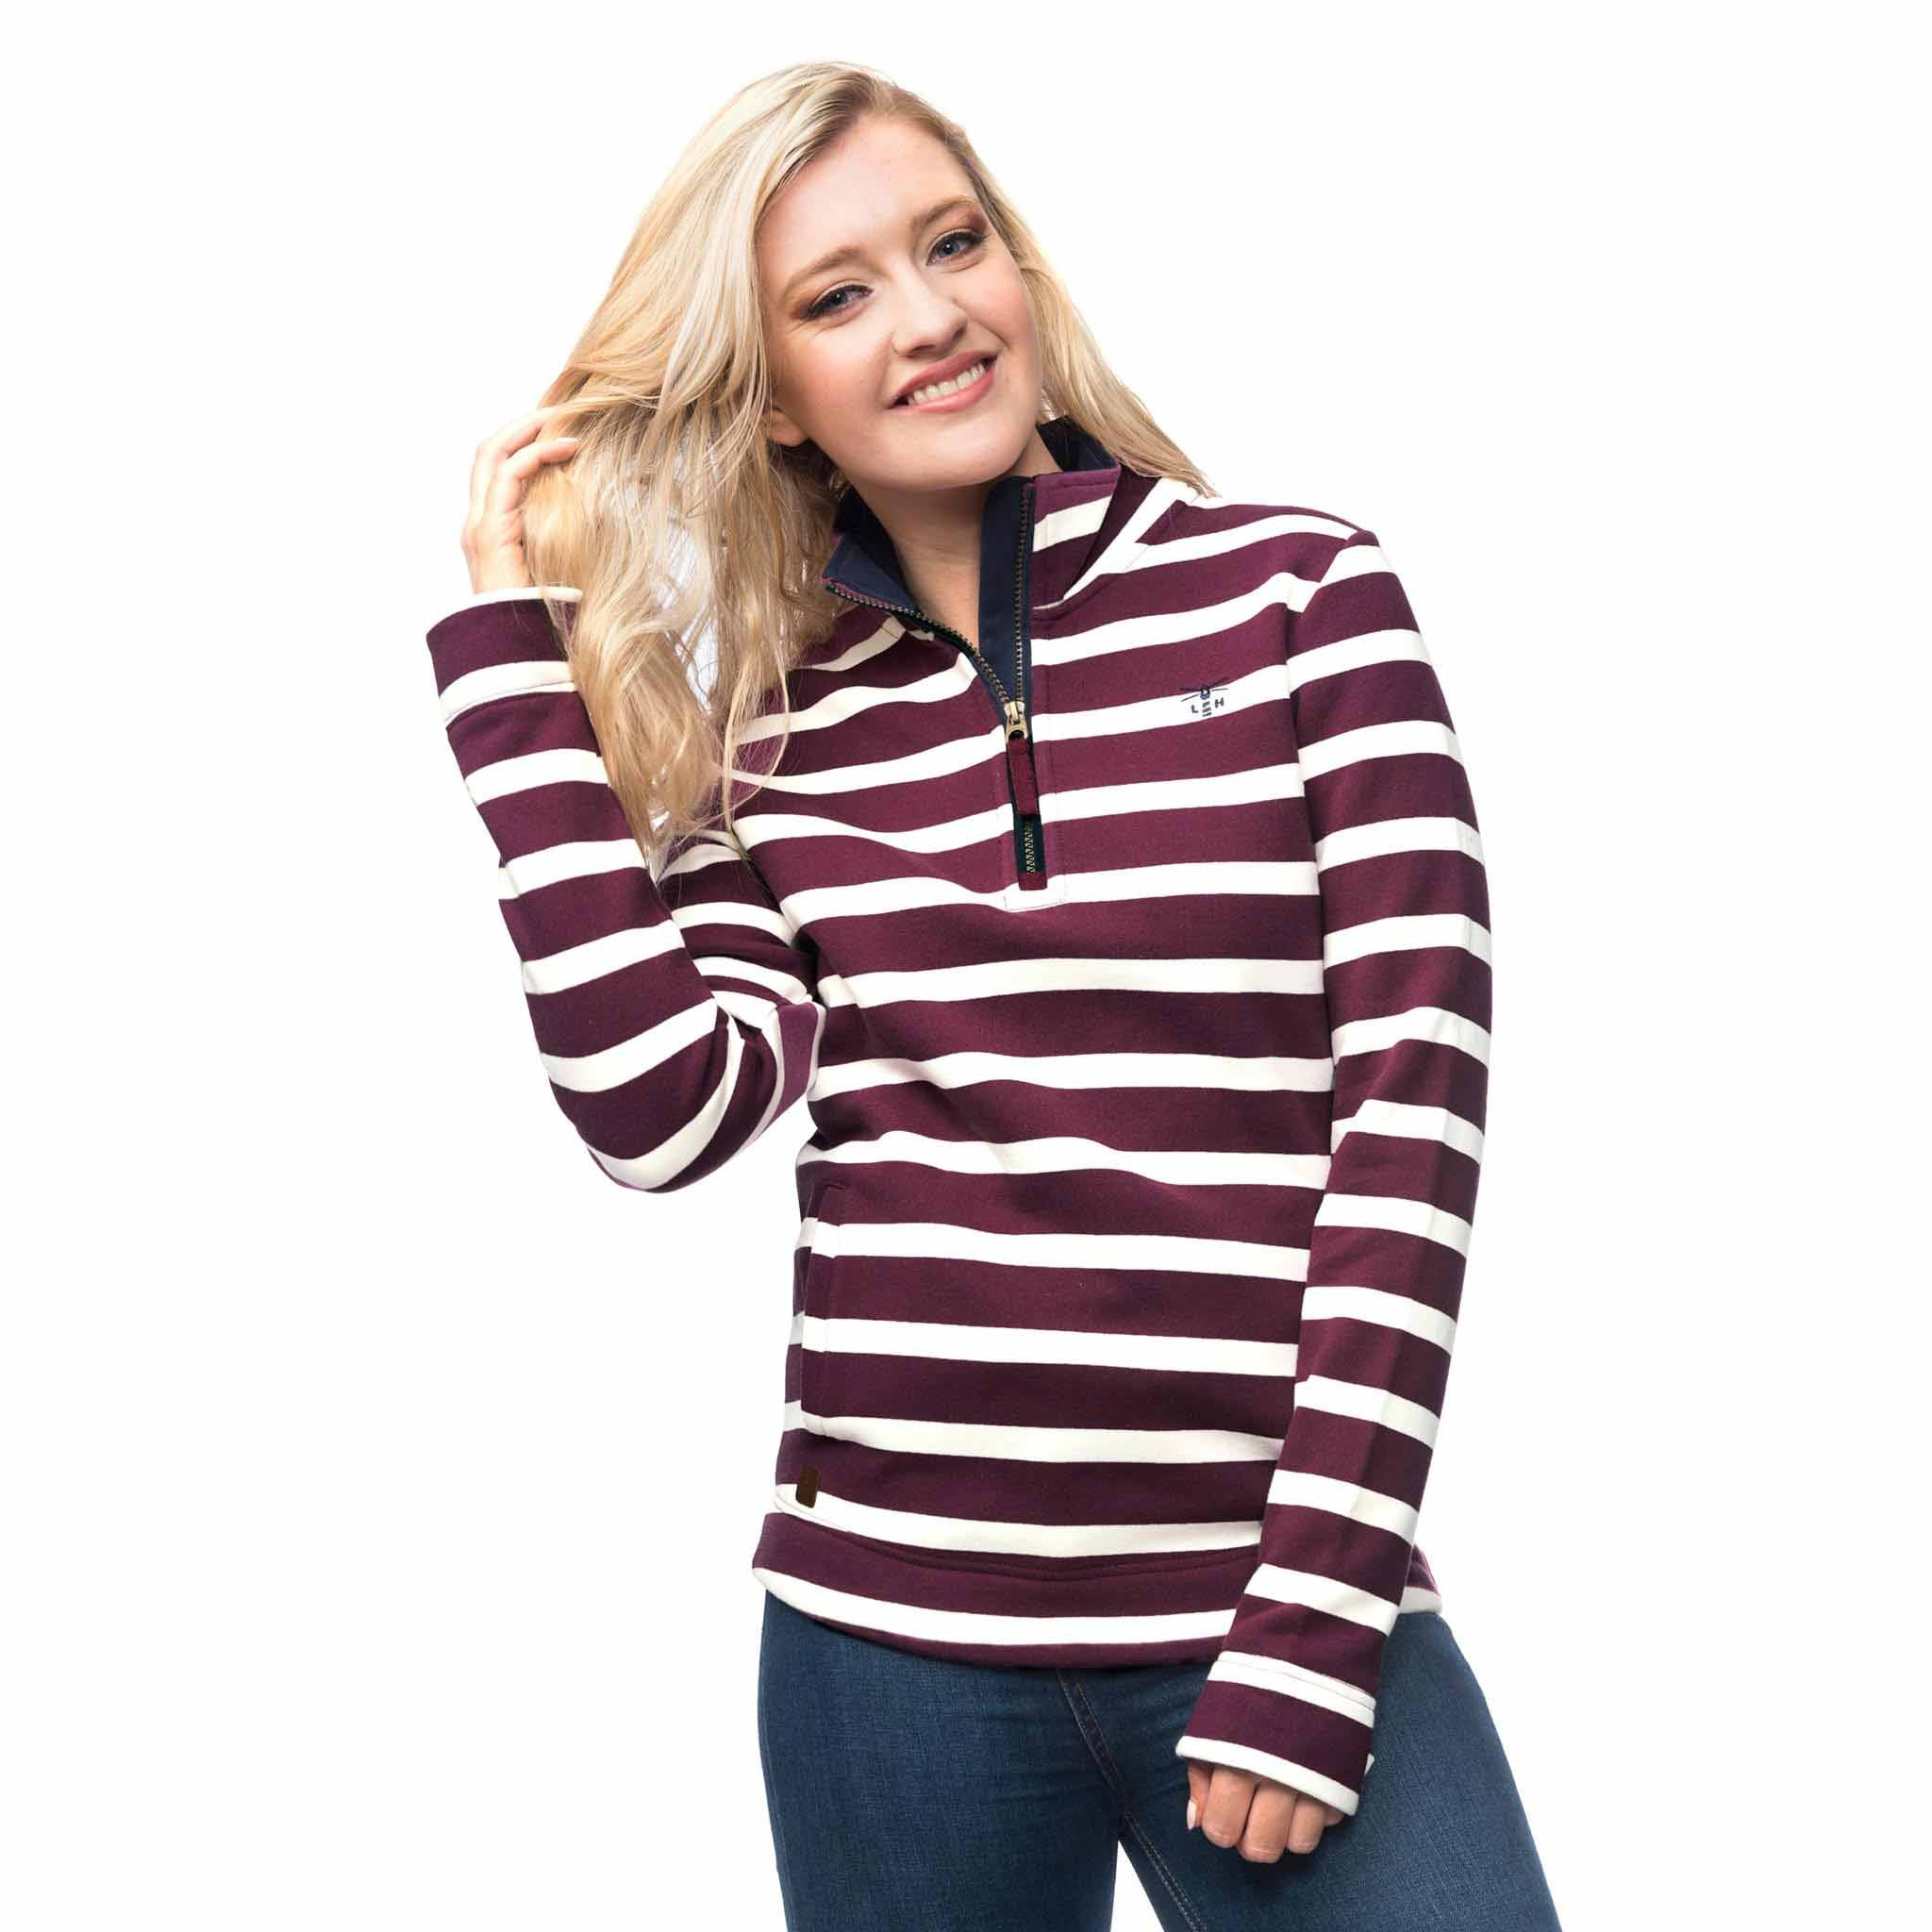 Lighthouse Womens Skye Half Zip Cotton Sweatshirt in Purple stripe.